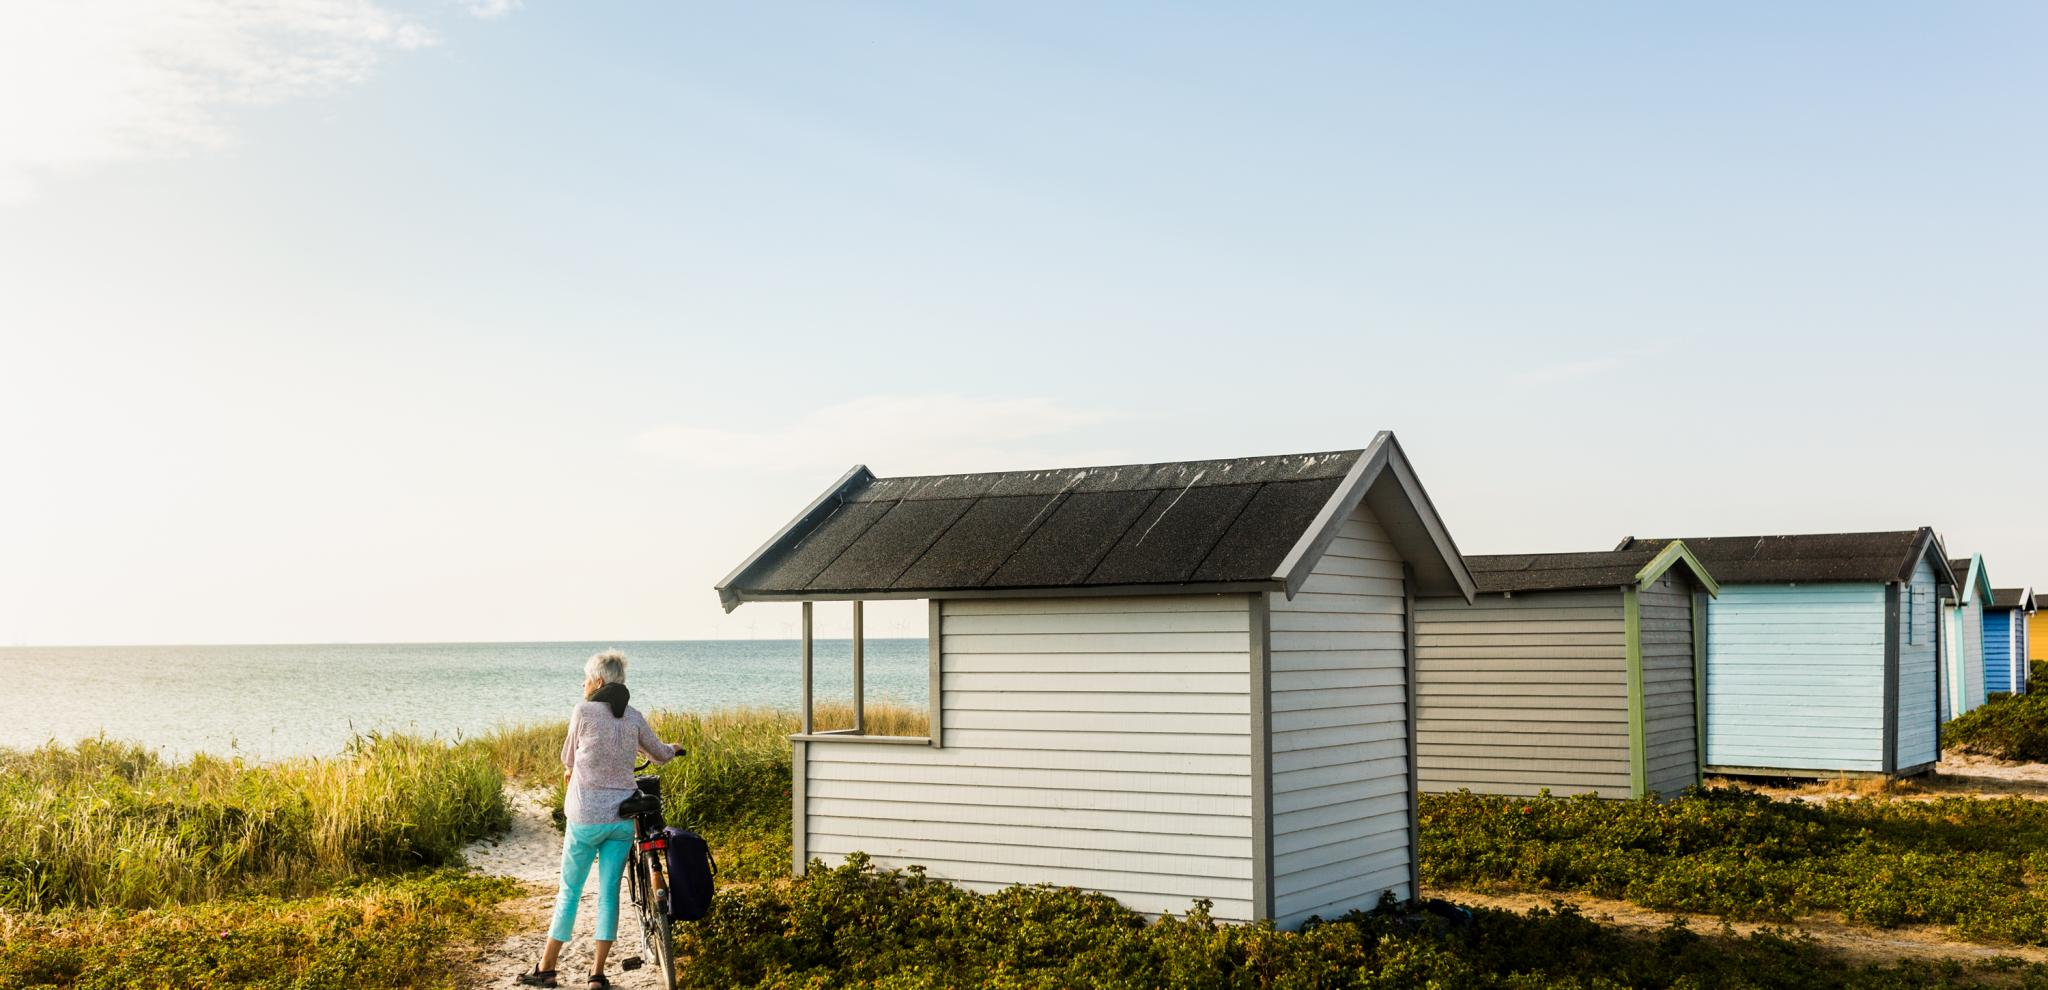 Bathing huts facing a beach. A woman with her bike stands nex to it and looking out.